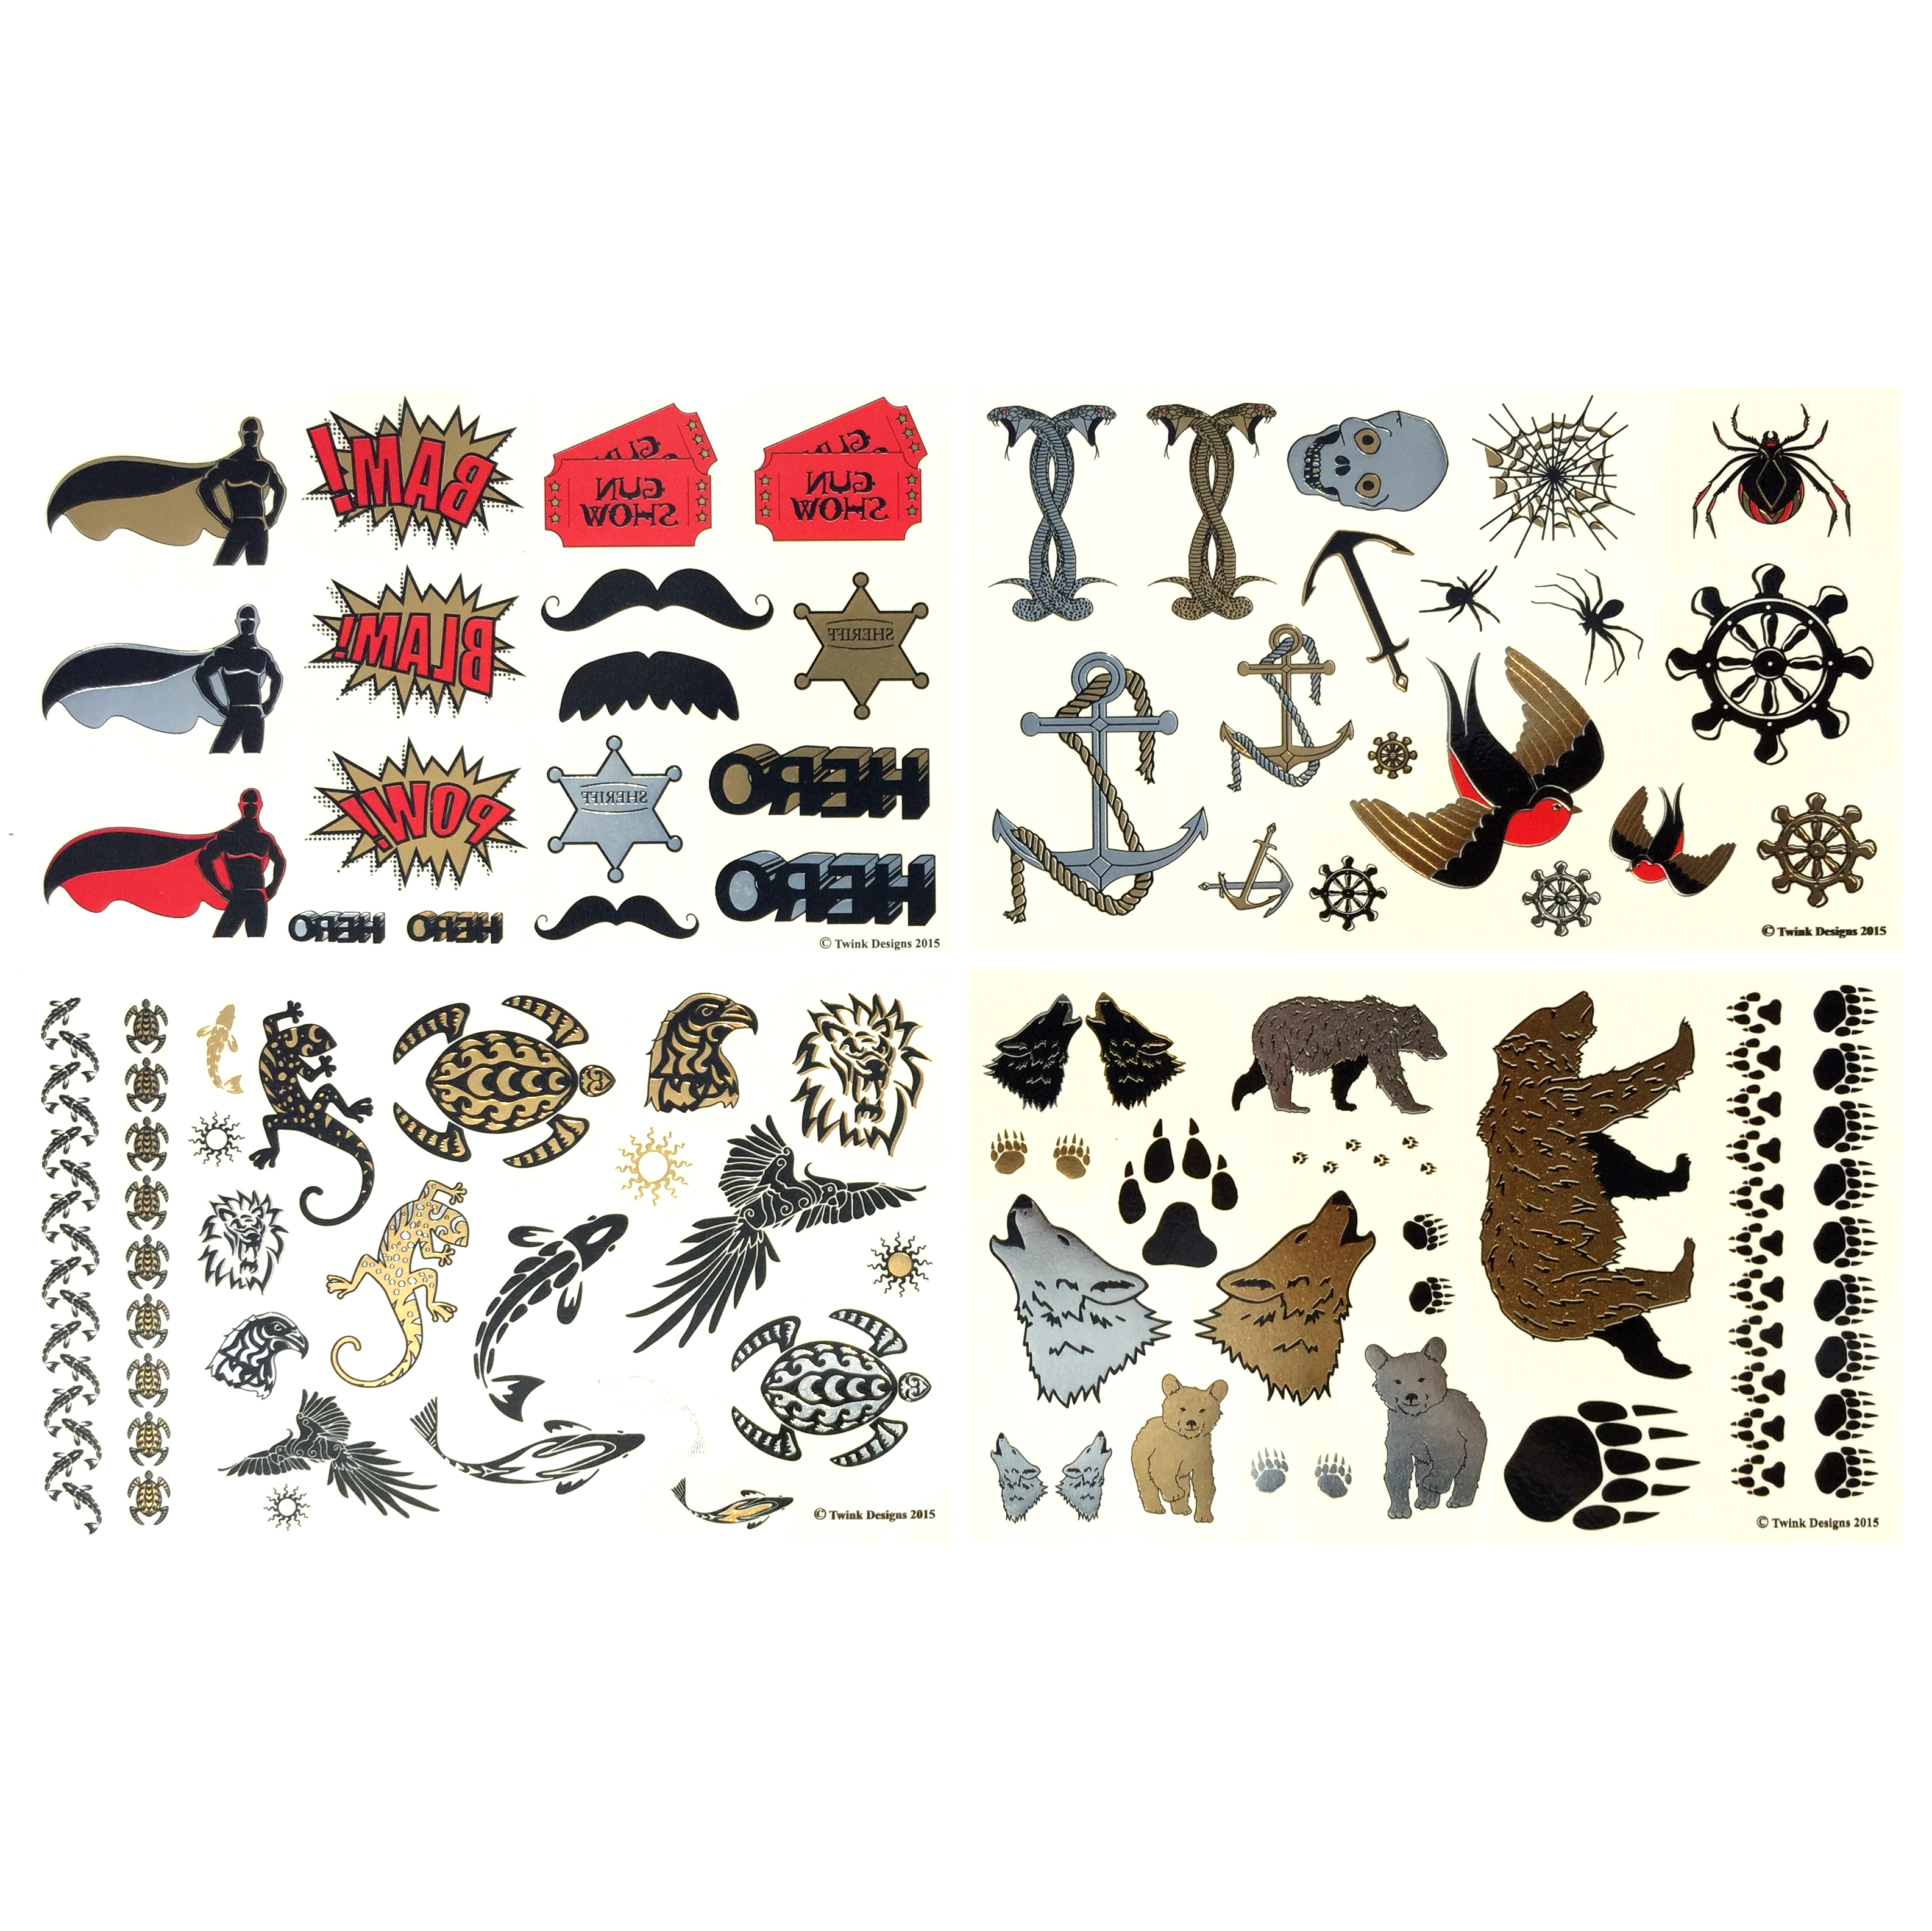 8 Pages of Metallic Temporary Tattoos for Kids